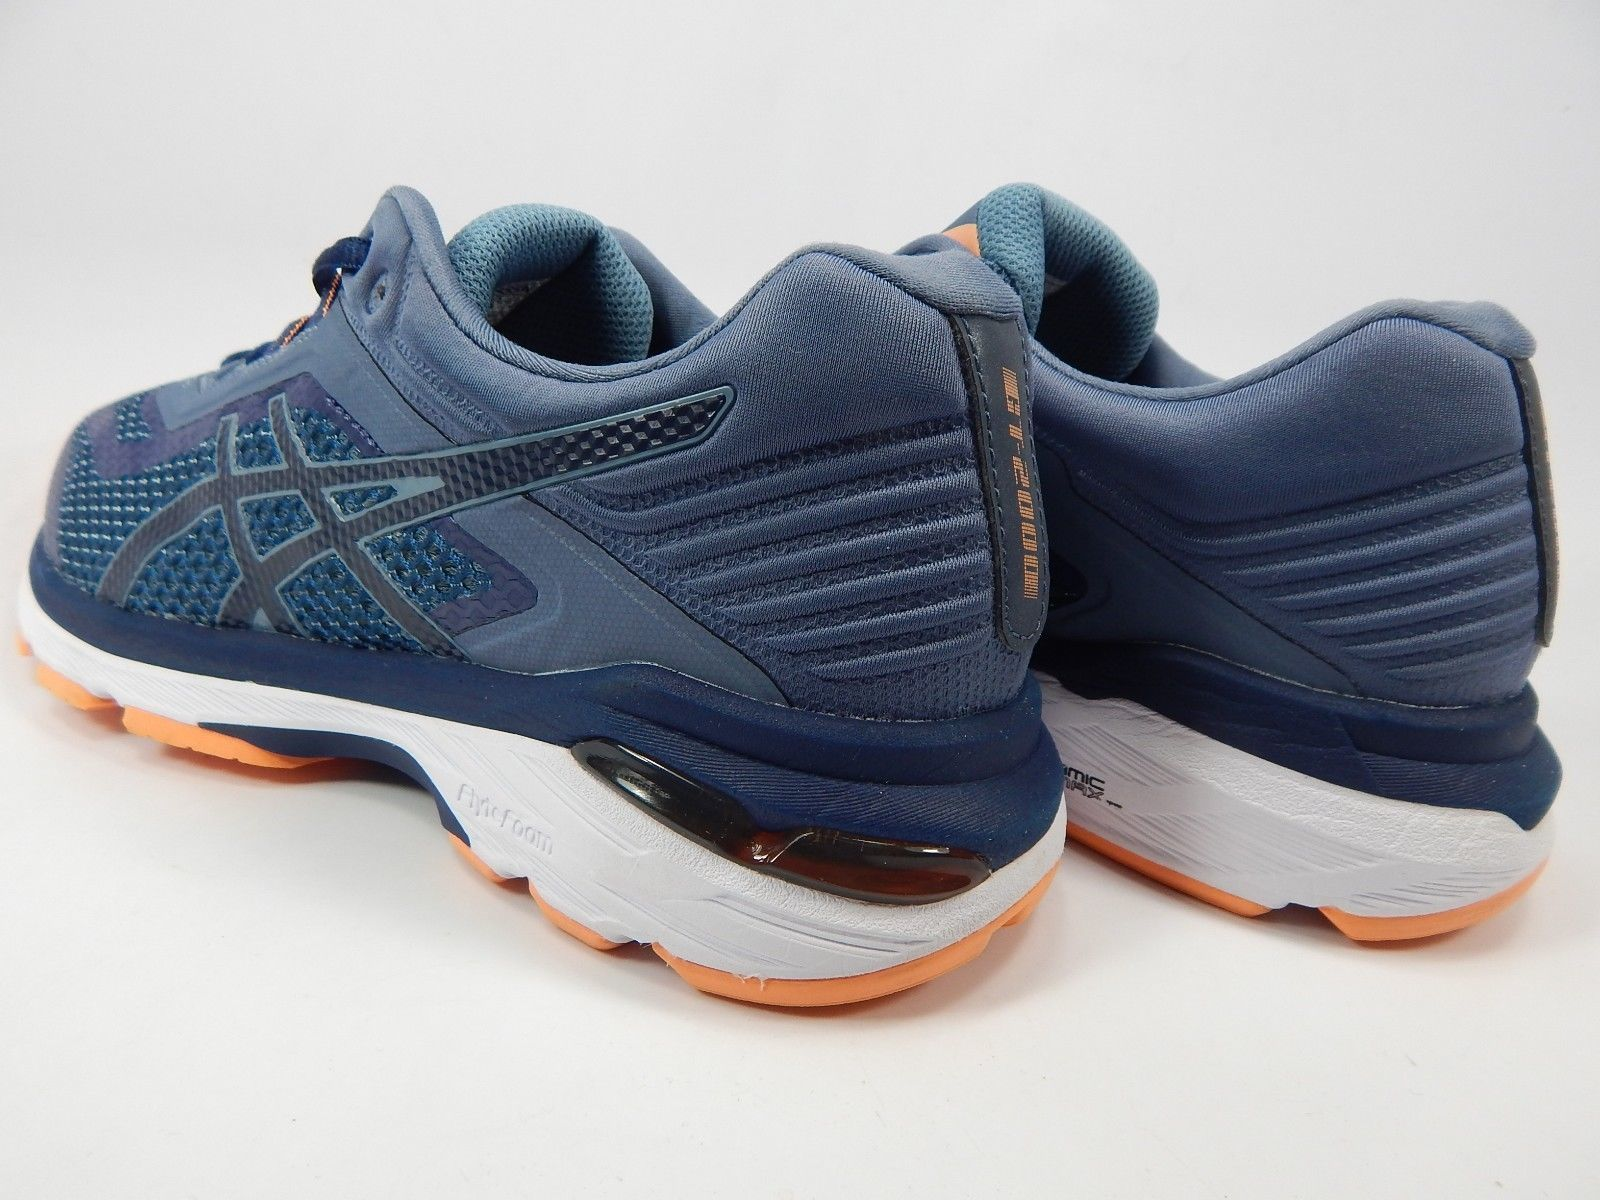 Asics GT 2000 v 6 Size US 9 M (B) EU 40.5 Women's Running Shoes Blue T855N